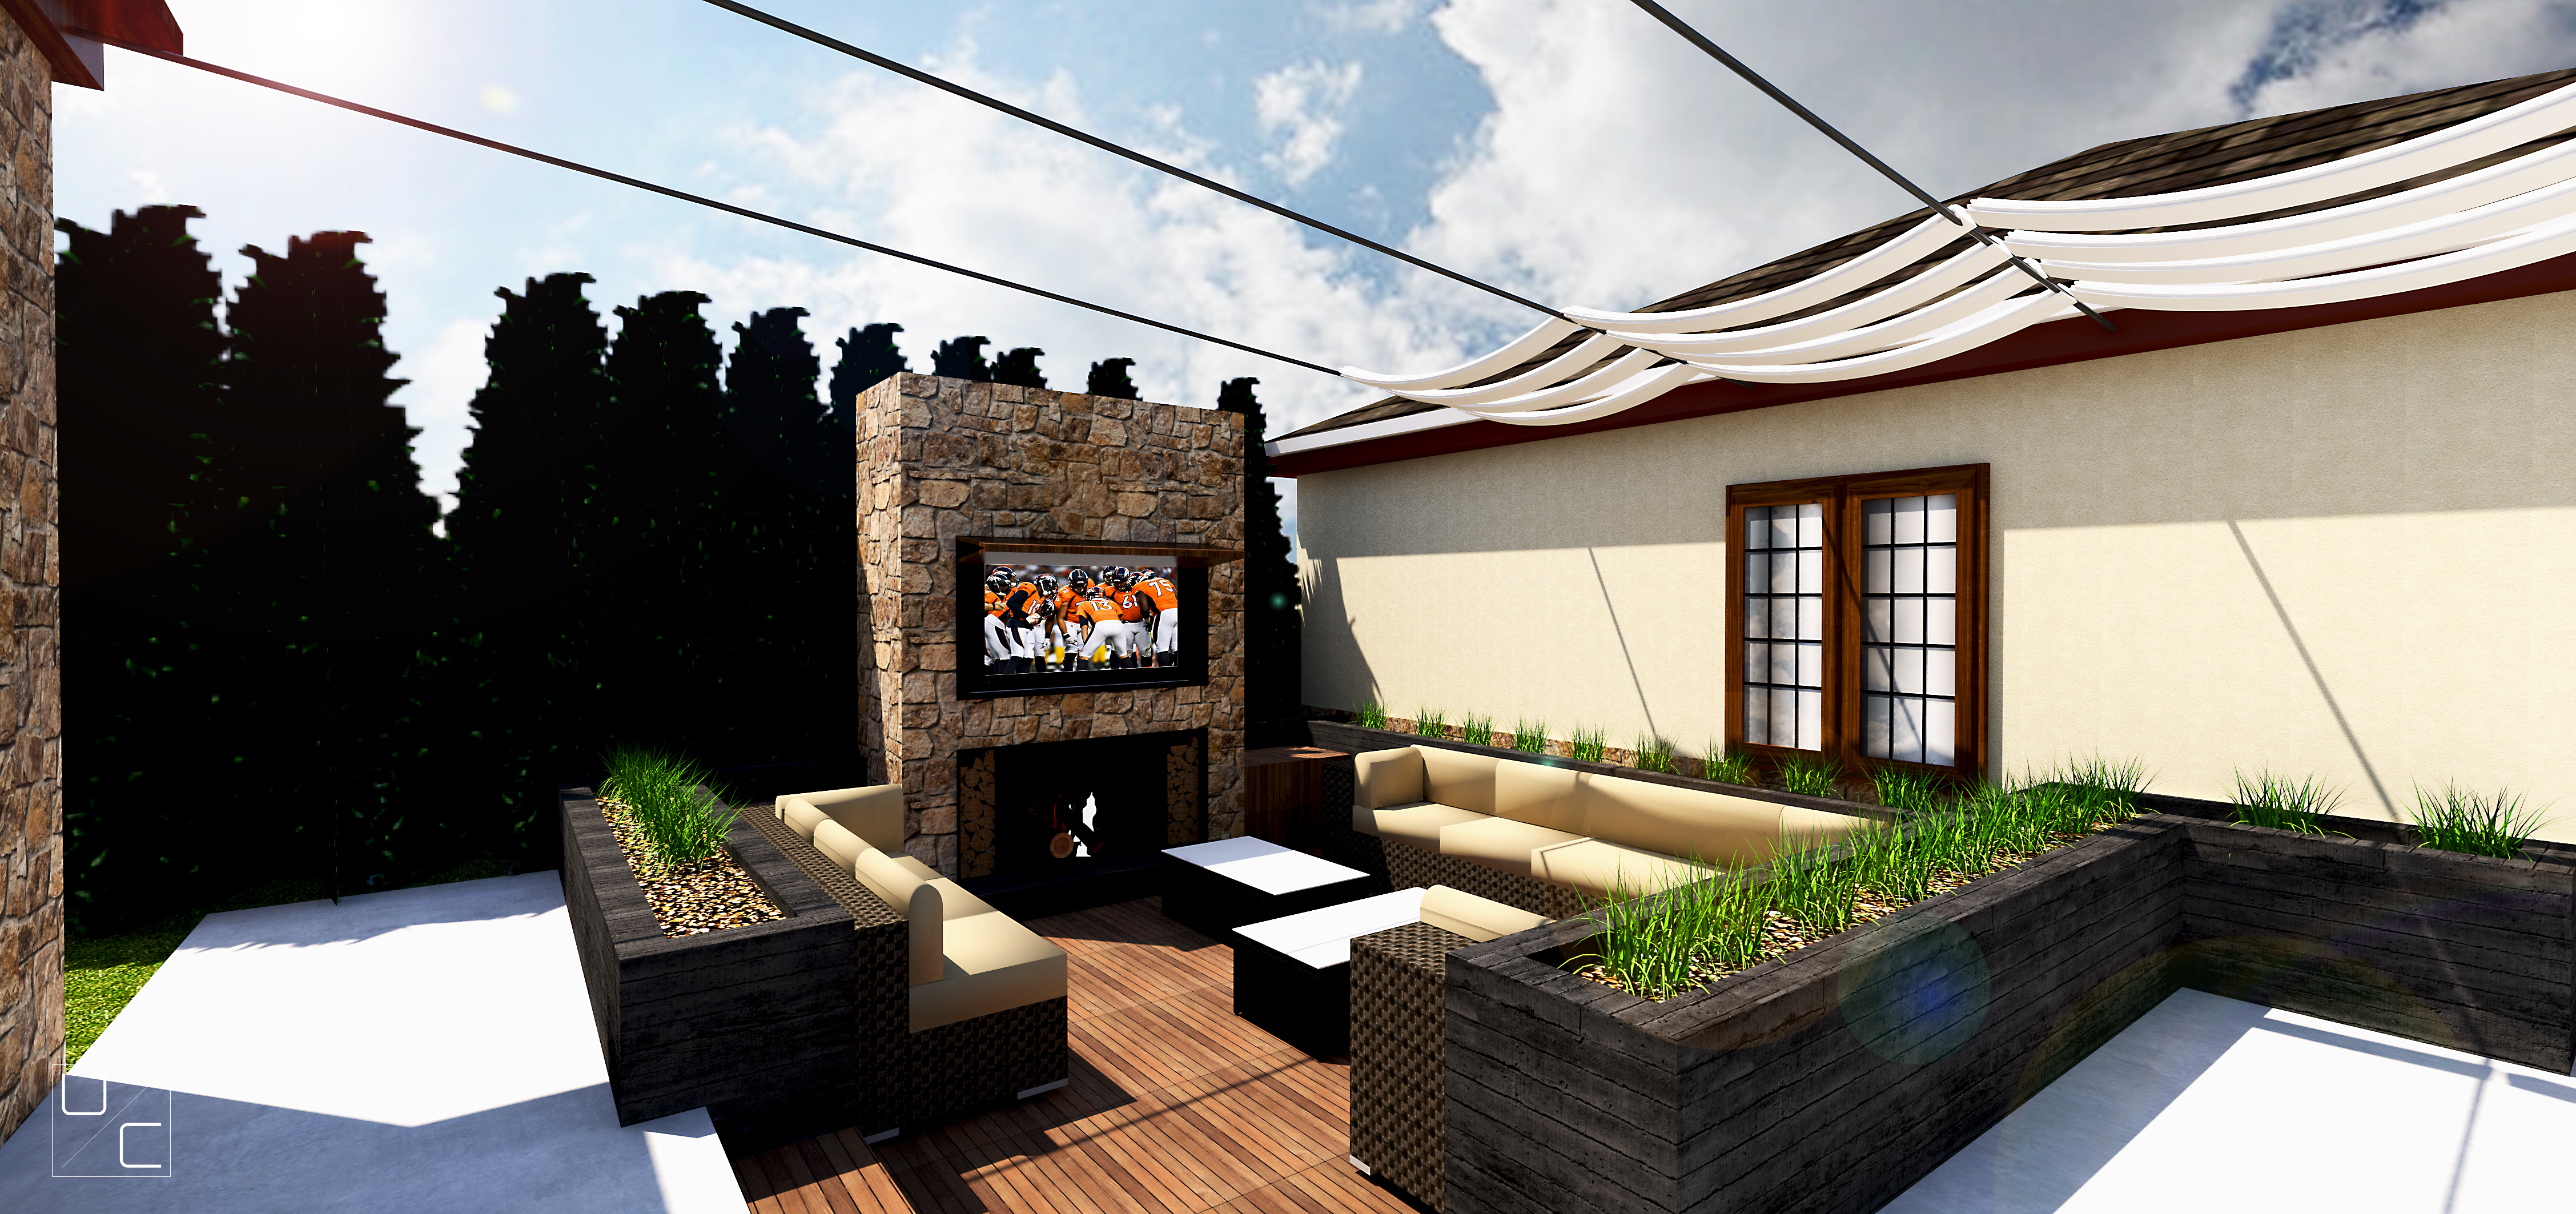 EXTERIOR- Rendering from deck